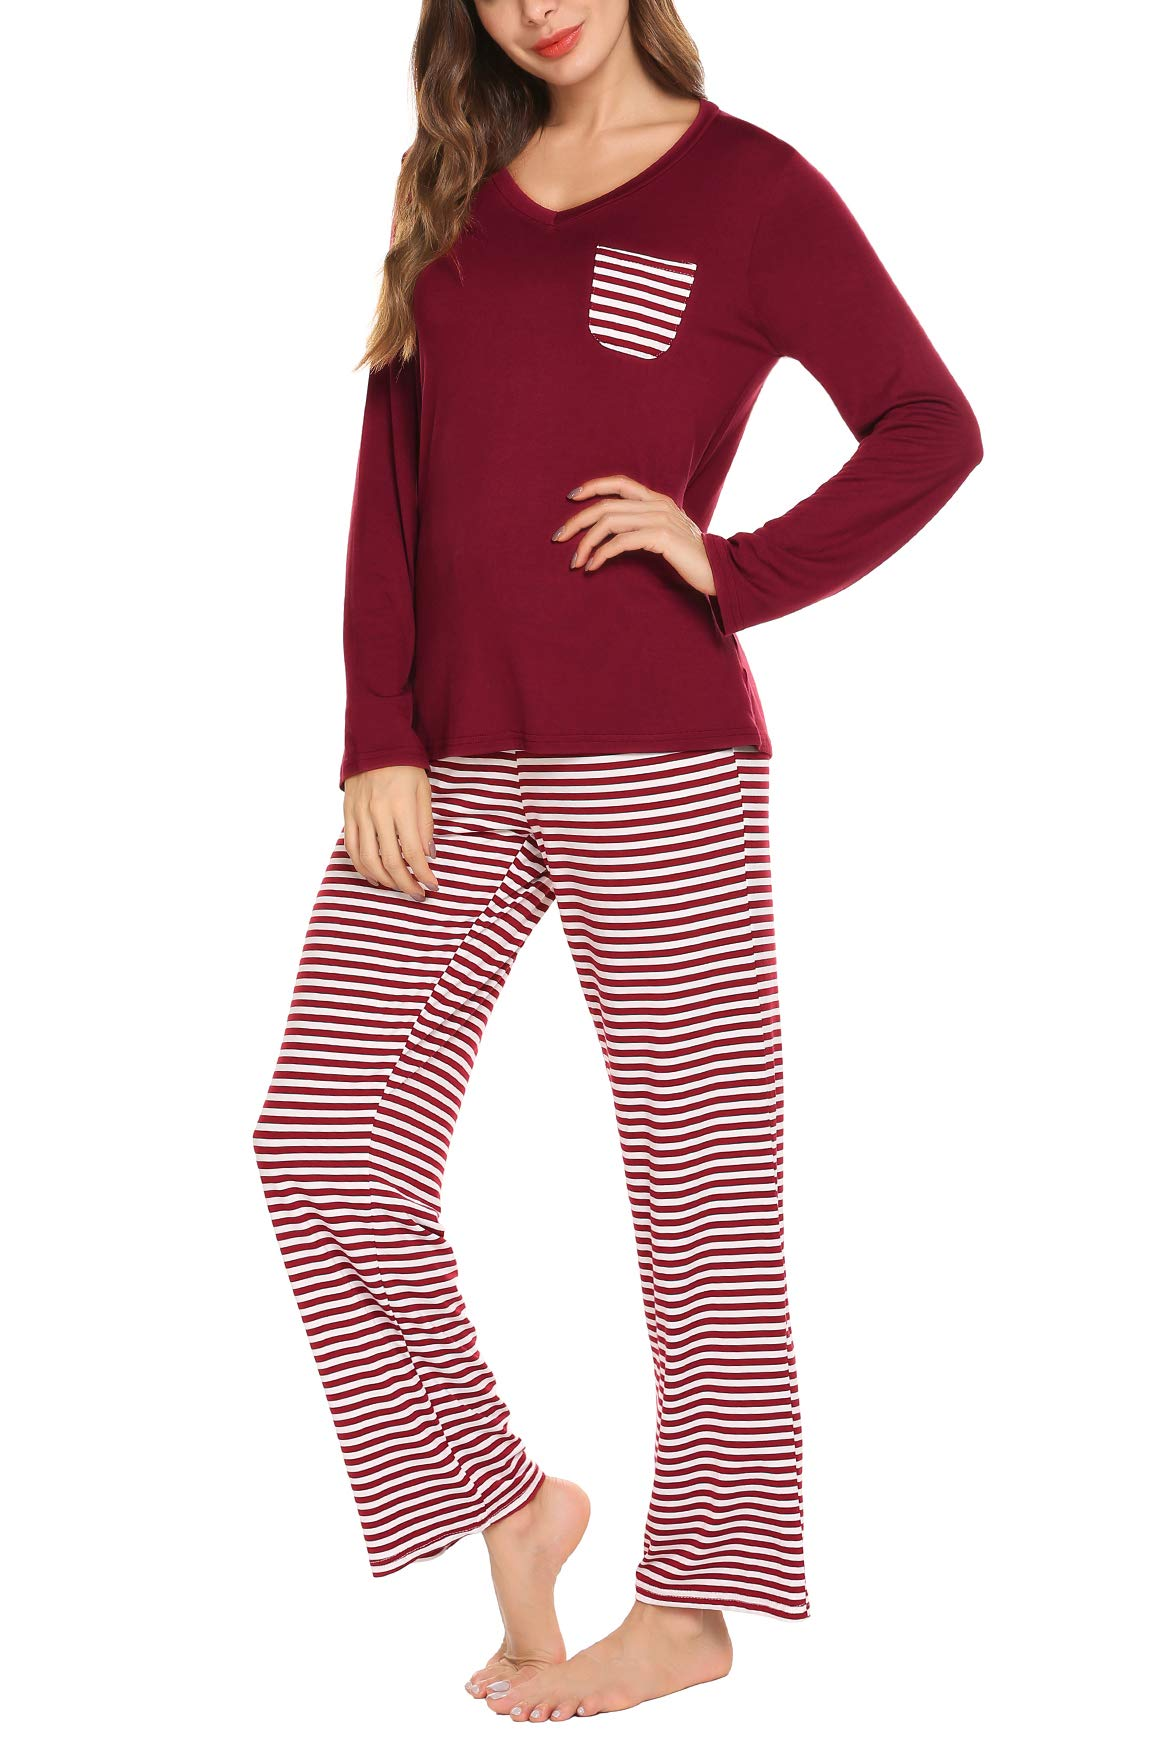 Soft Cotton V-Neck Pullover Women's Pajama Set with Long Pants Warm Sleepwear for Winter Wine Red S